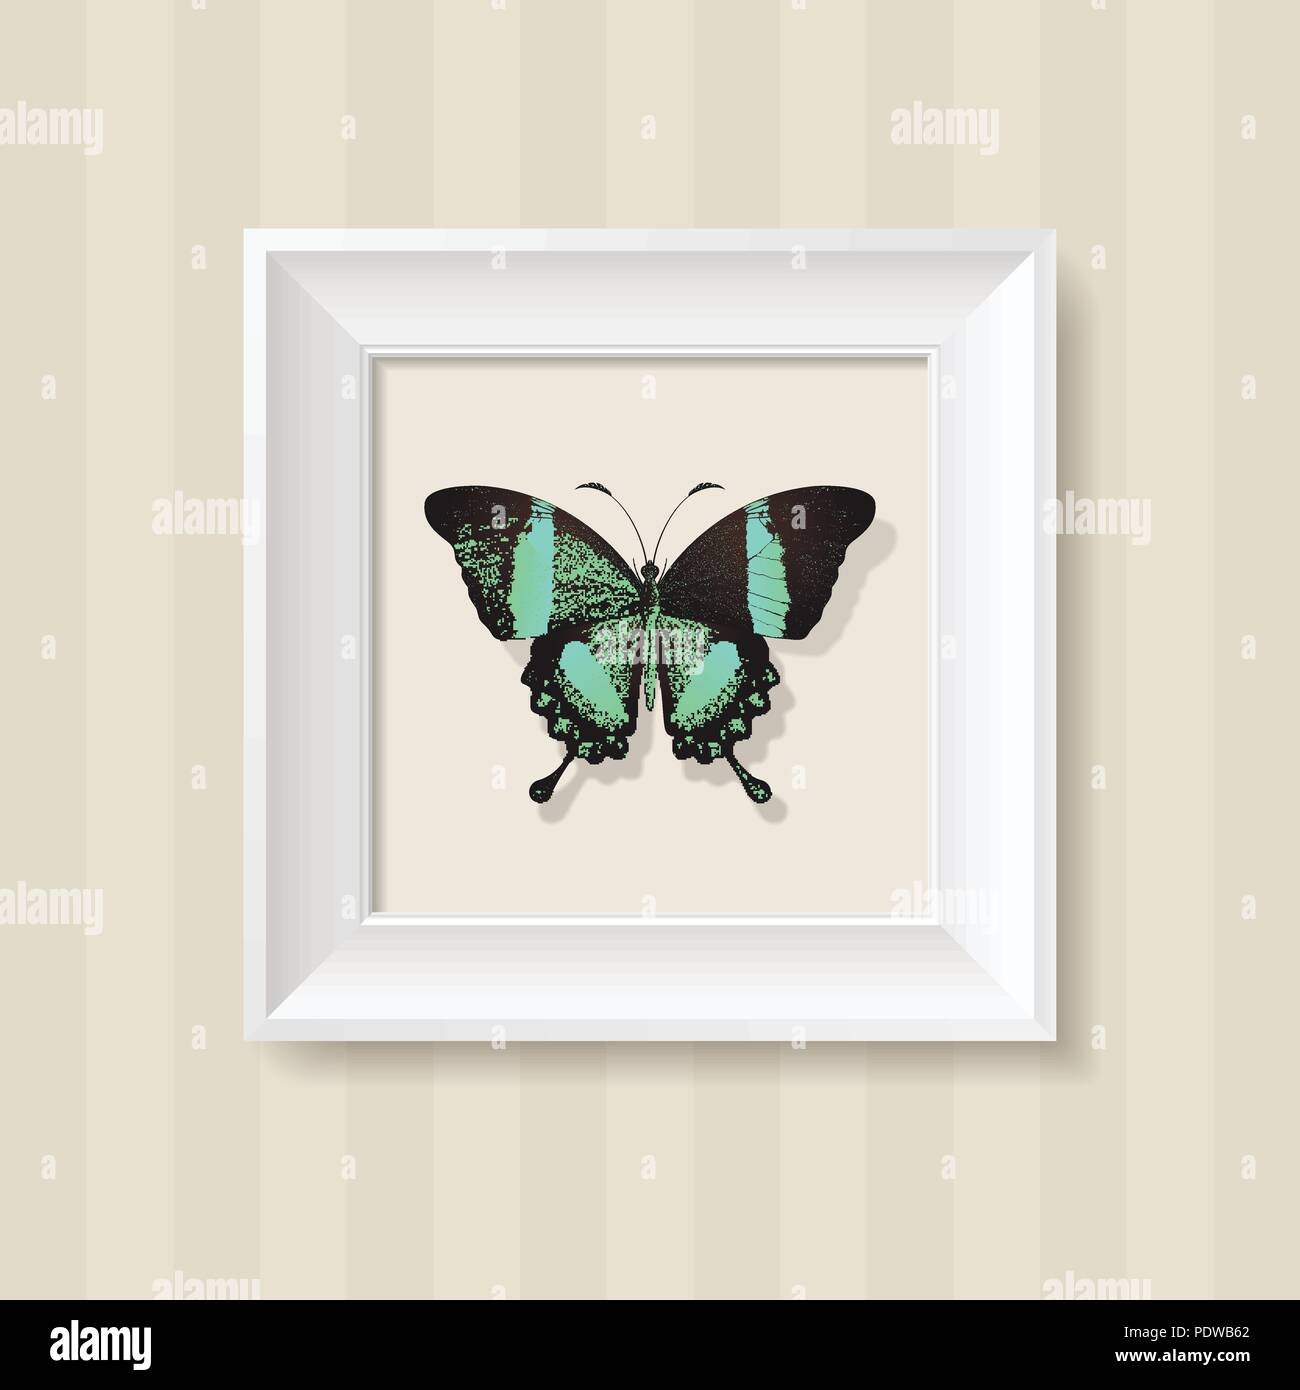 green butterfly in a white frame on a wall background - Stock Vector